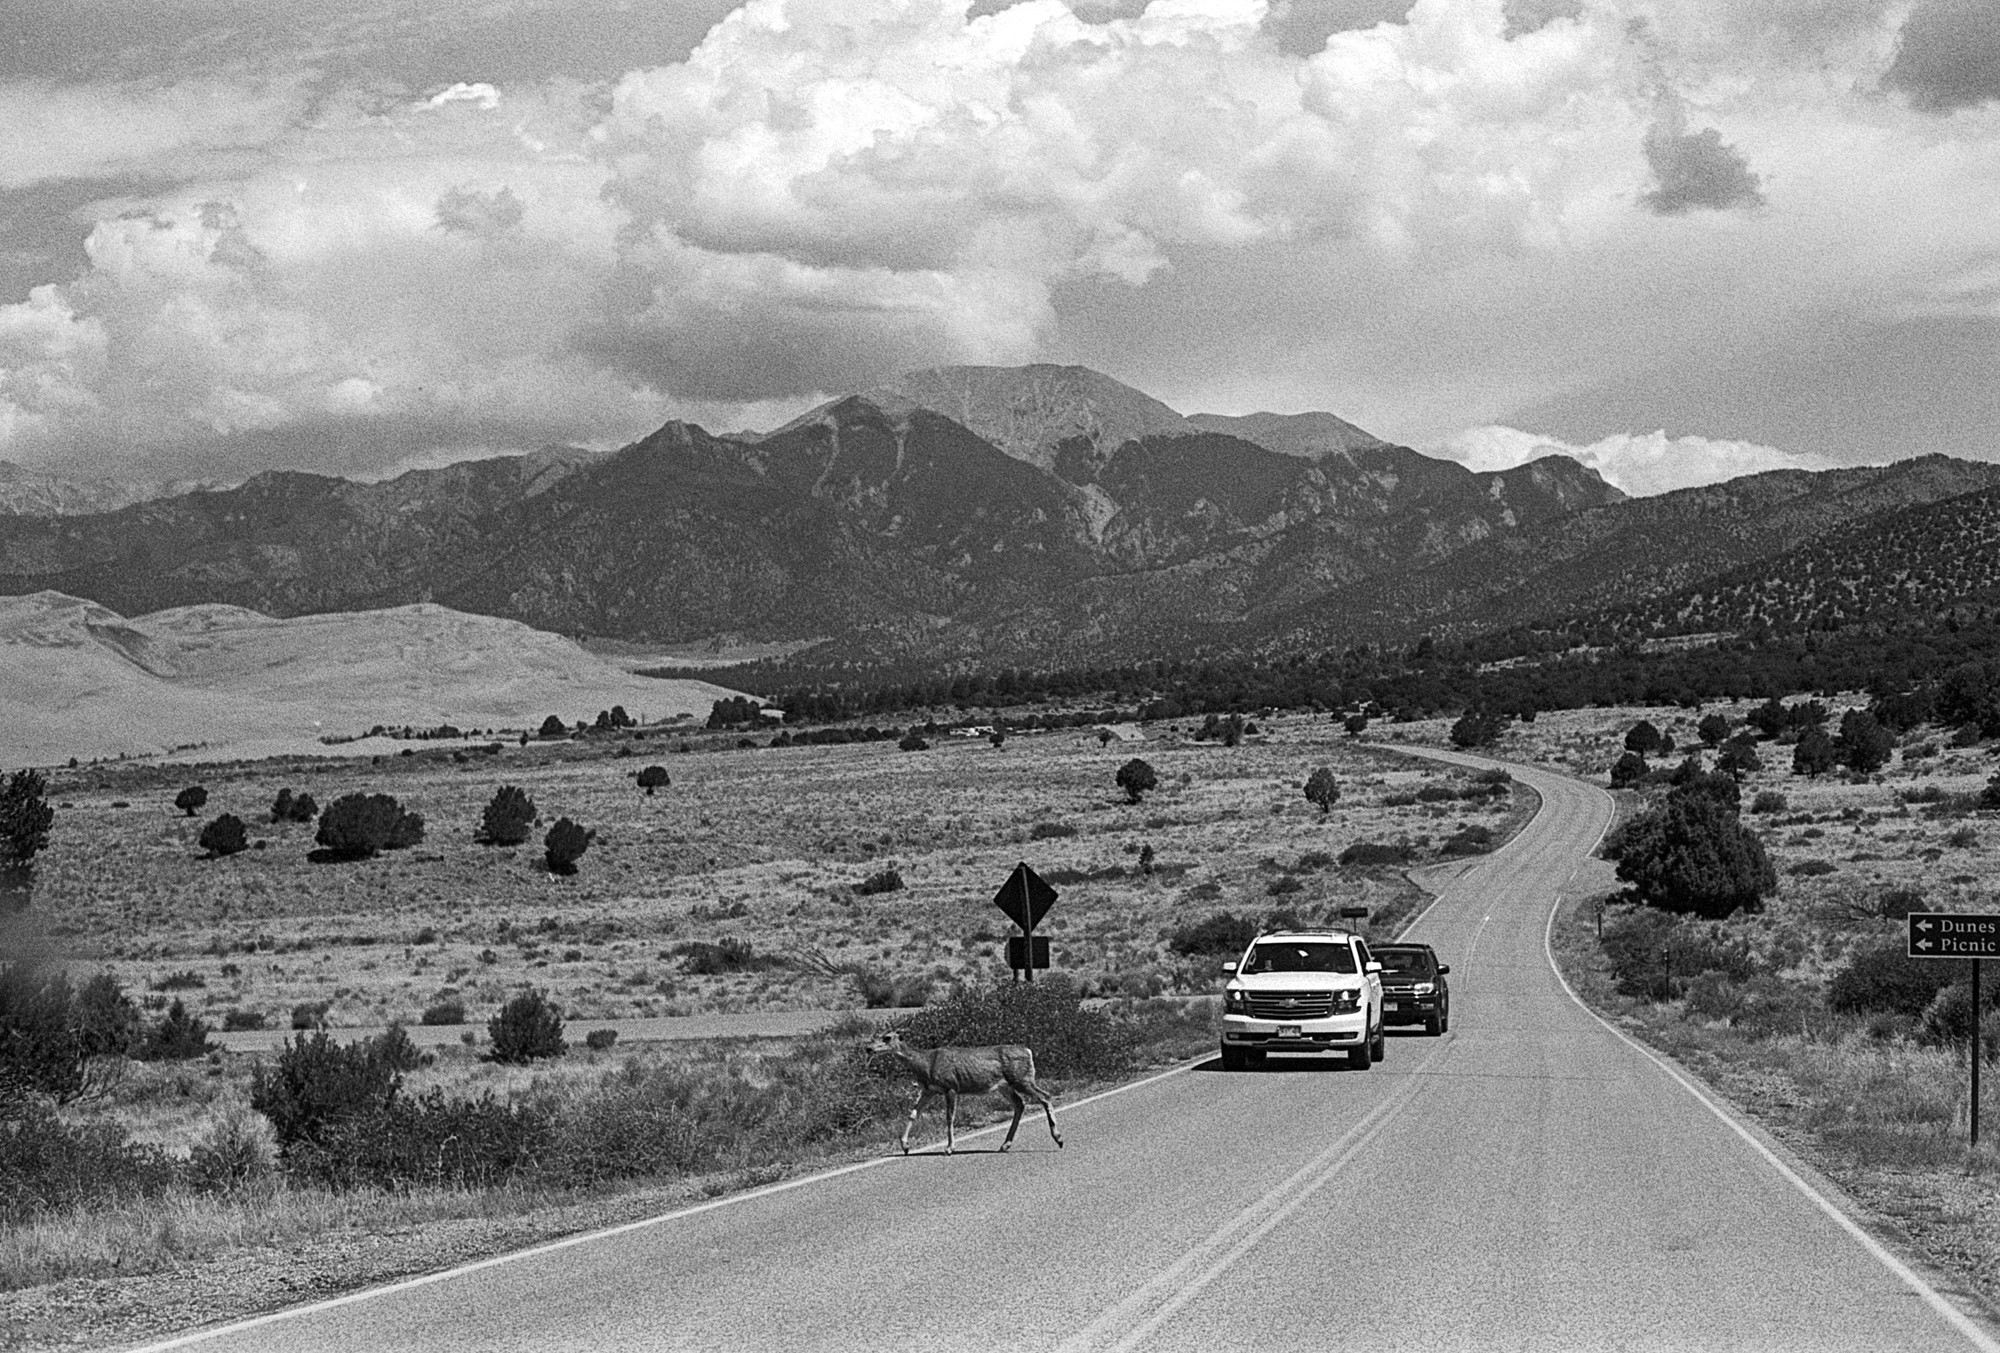 Black and white photo of a deer crossing a highway while cars wait, with mountains in the background (Colorado)